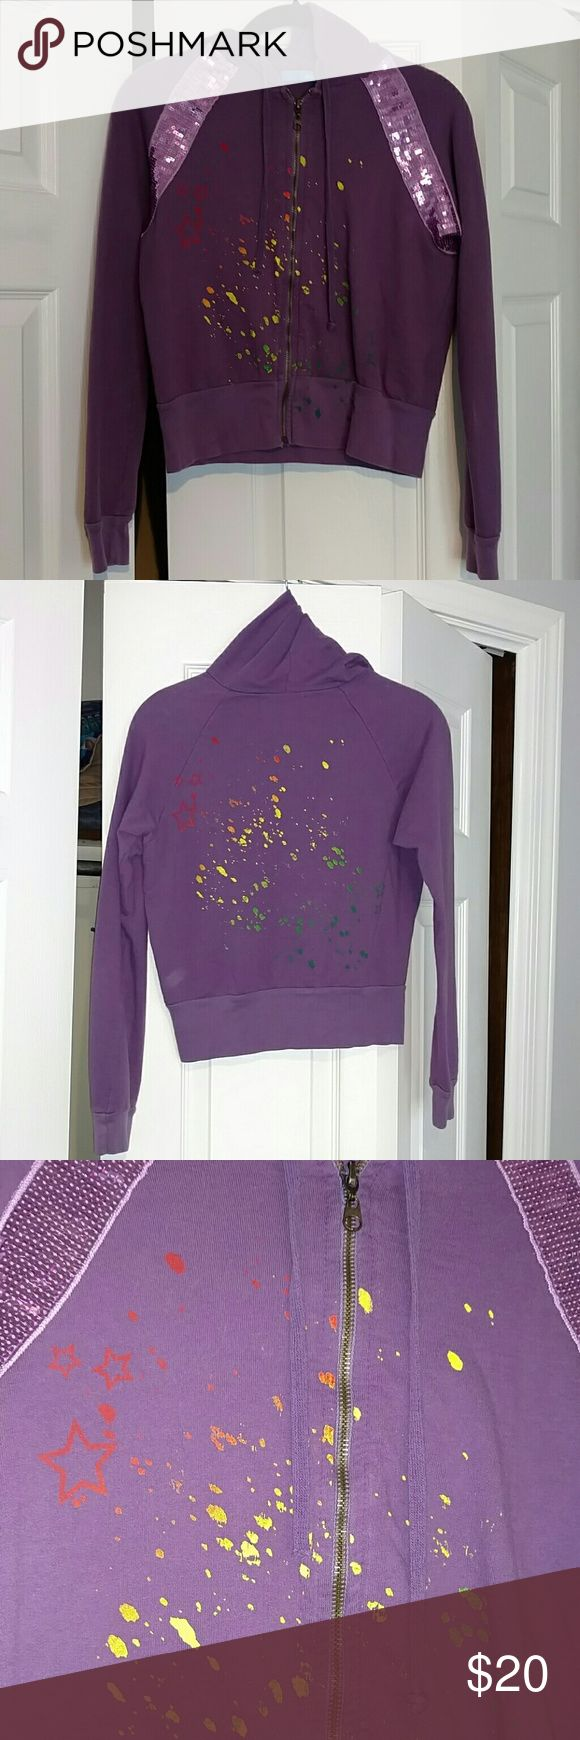 Delia's Zip Up Hoodie M Excellent condition, purple zip up hoodie from Delia's.  Sequin details, and paint splatter on front and back.  This is such a cute hoodie! Delia's Tops Sweatshirts & Hoodies